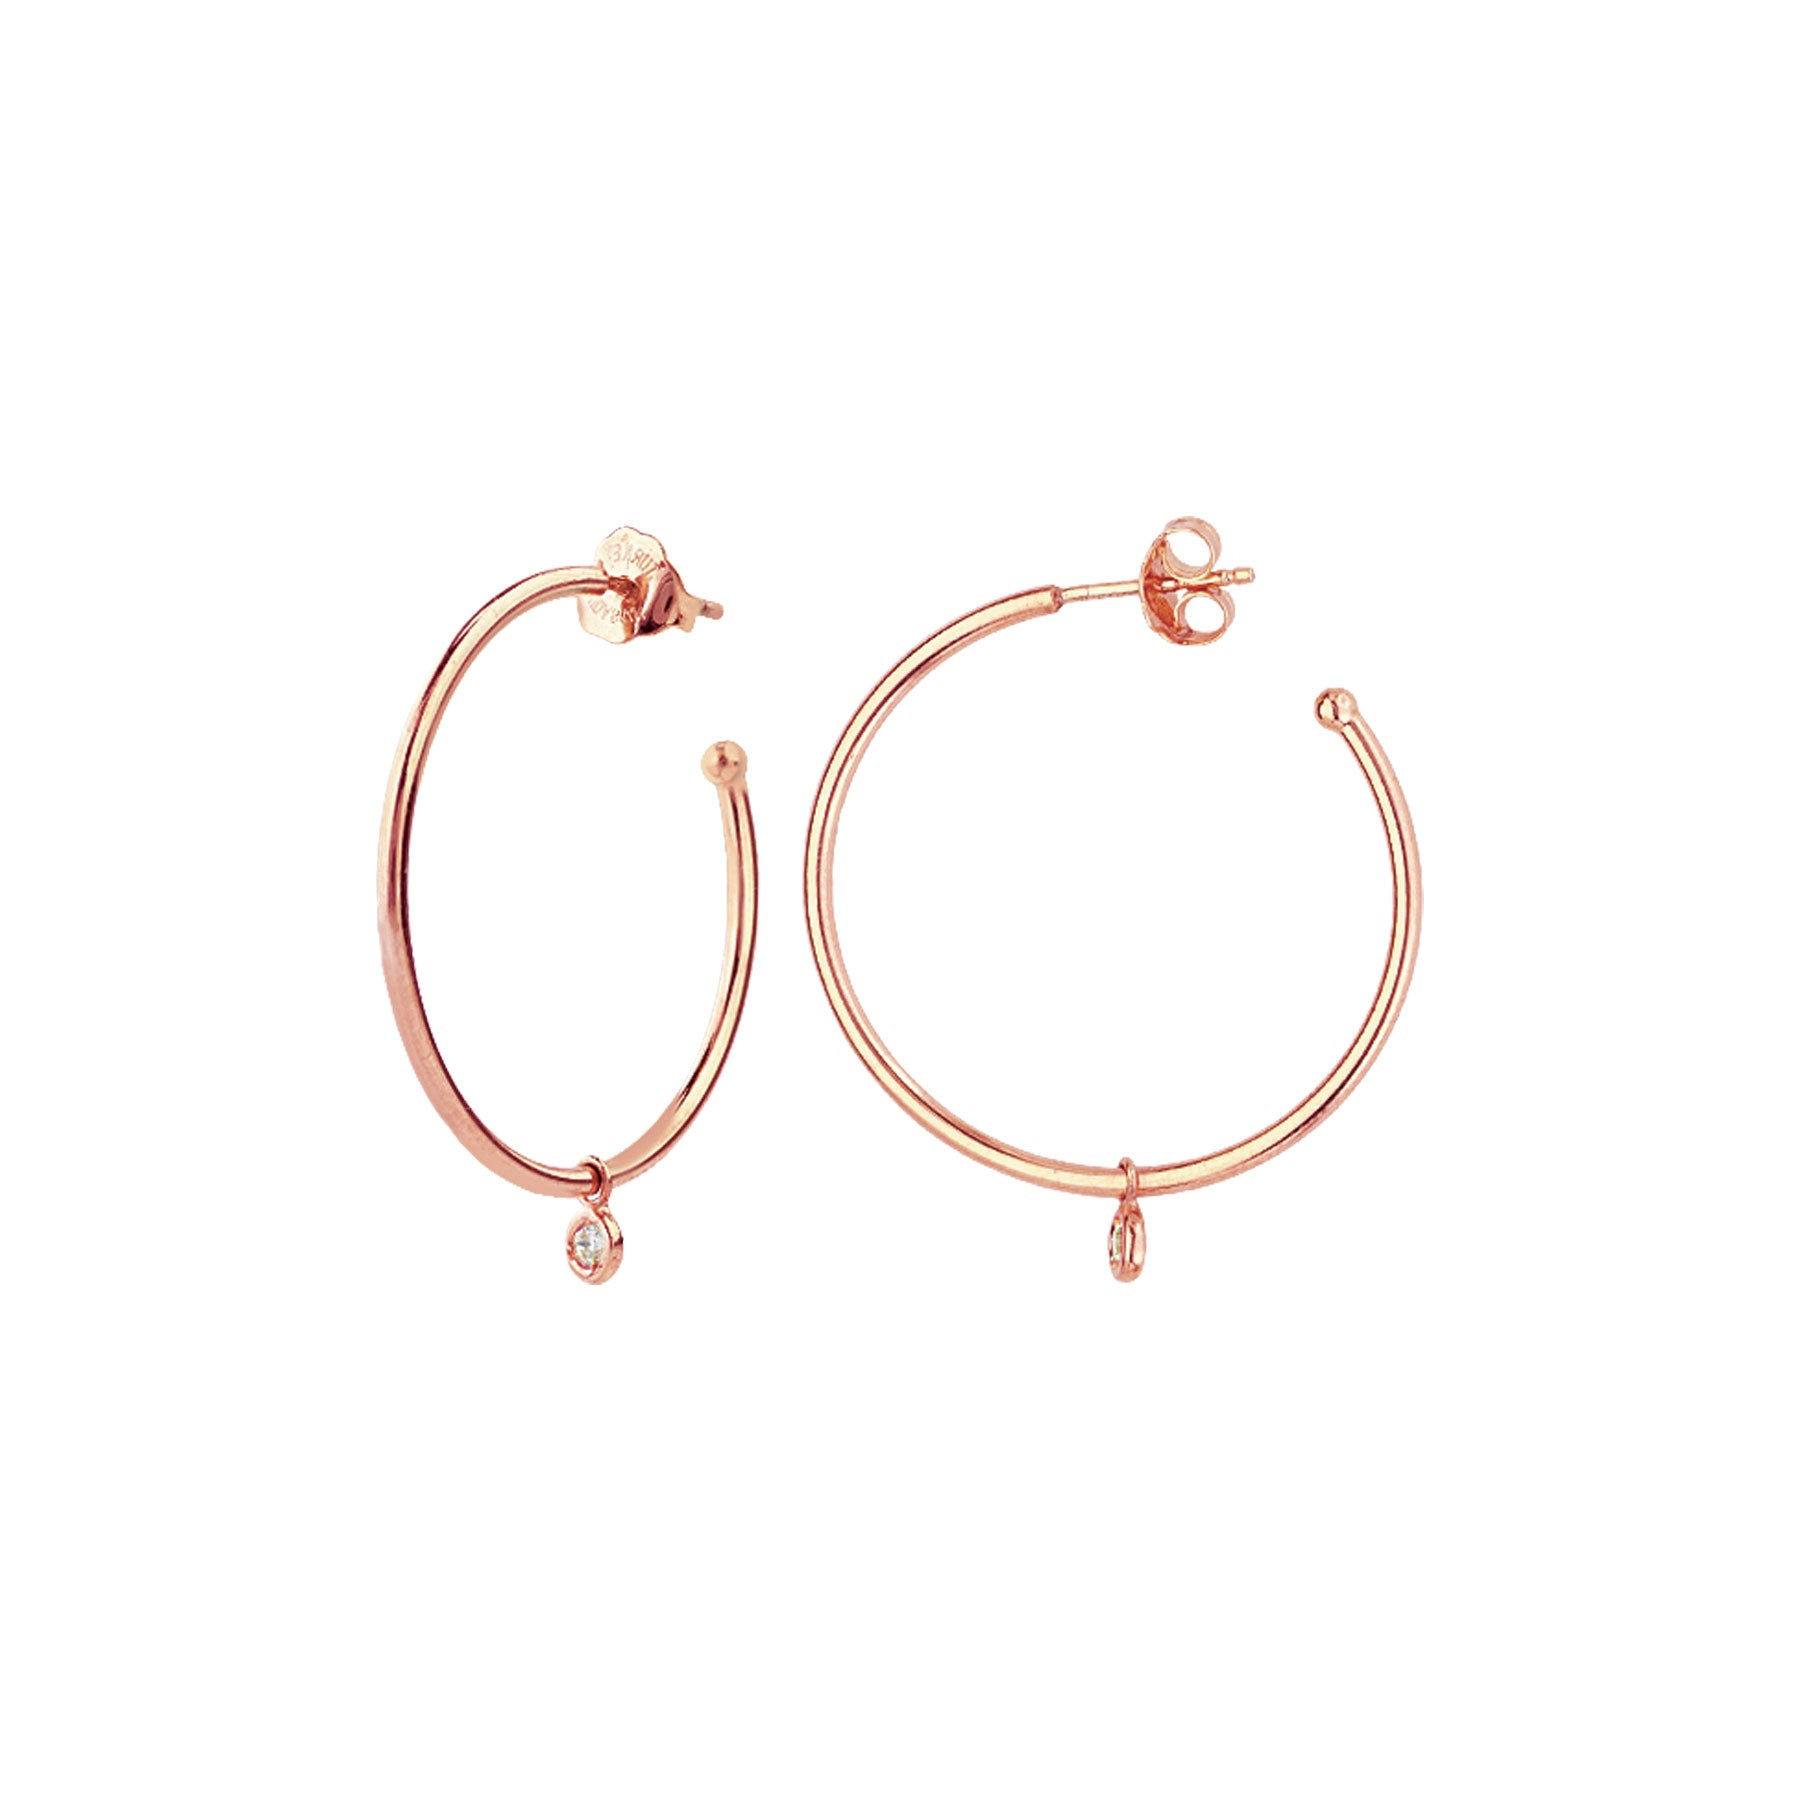 Hoop Earrings with Small Diamond Dangle, 1 Inch, 14K Rose Gold